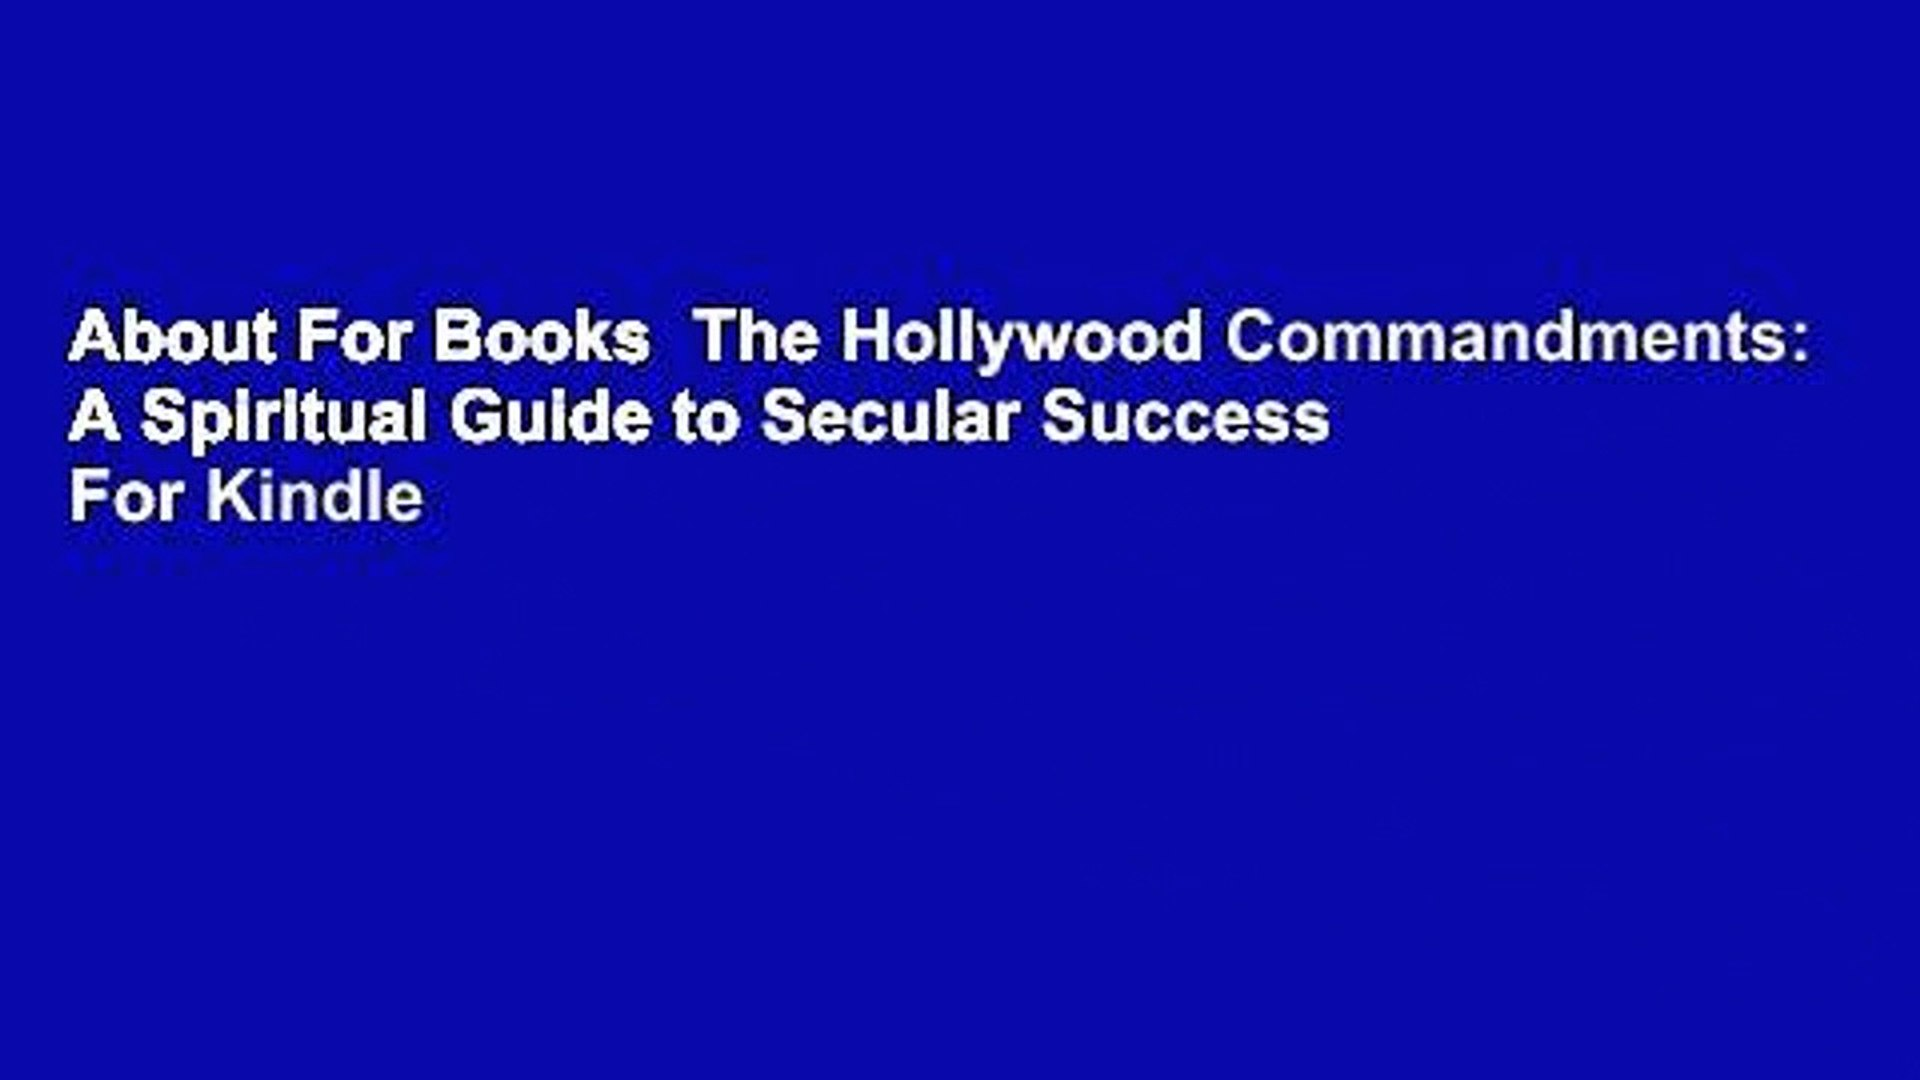 About For Books  The Hollywood Commandments: A Spiritual Guide to Secular Success  For Kindle